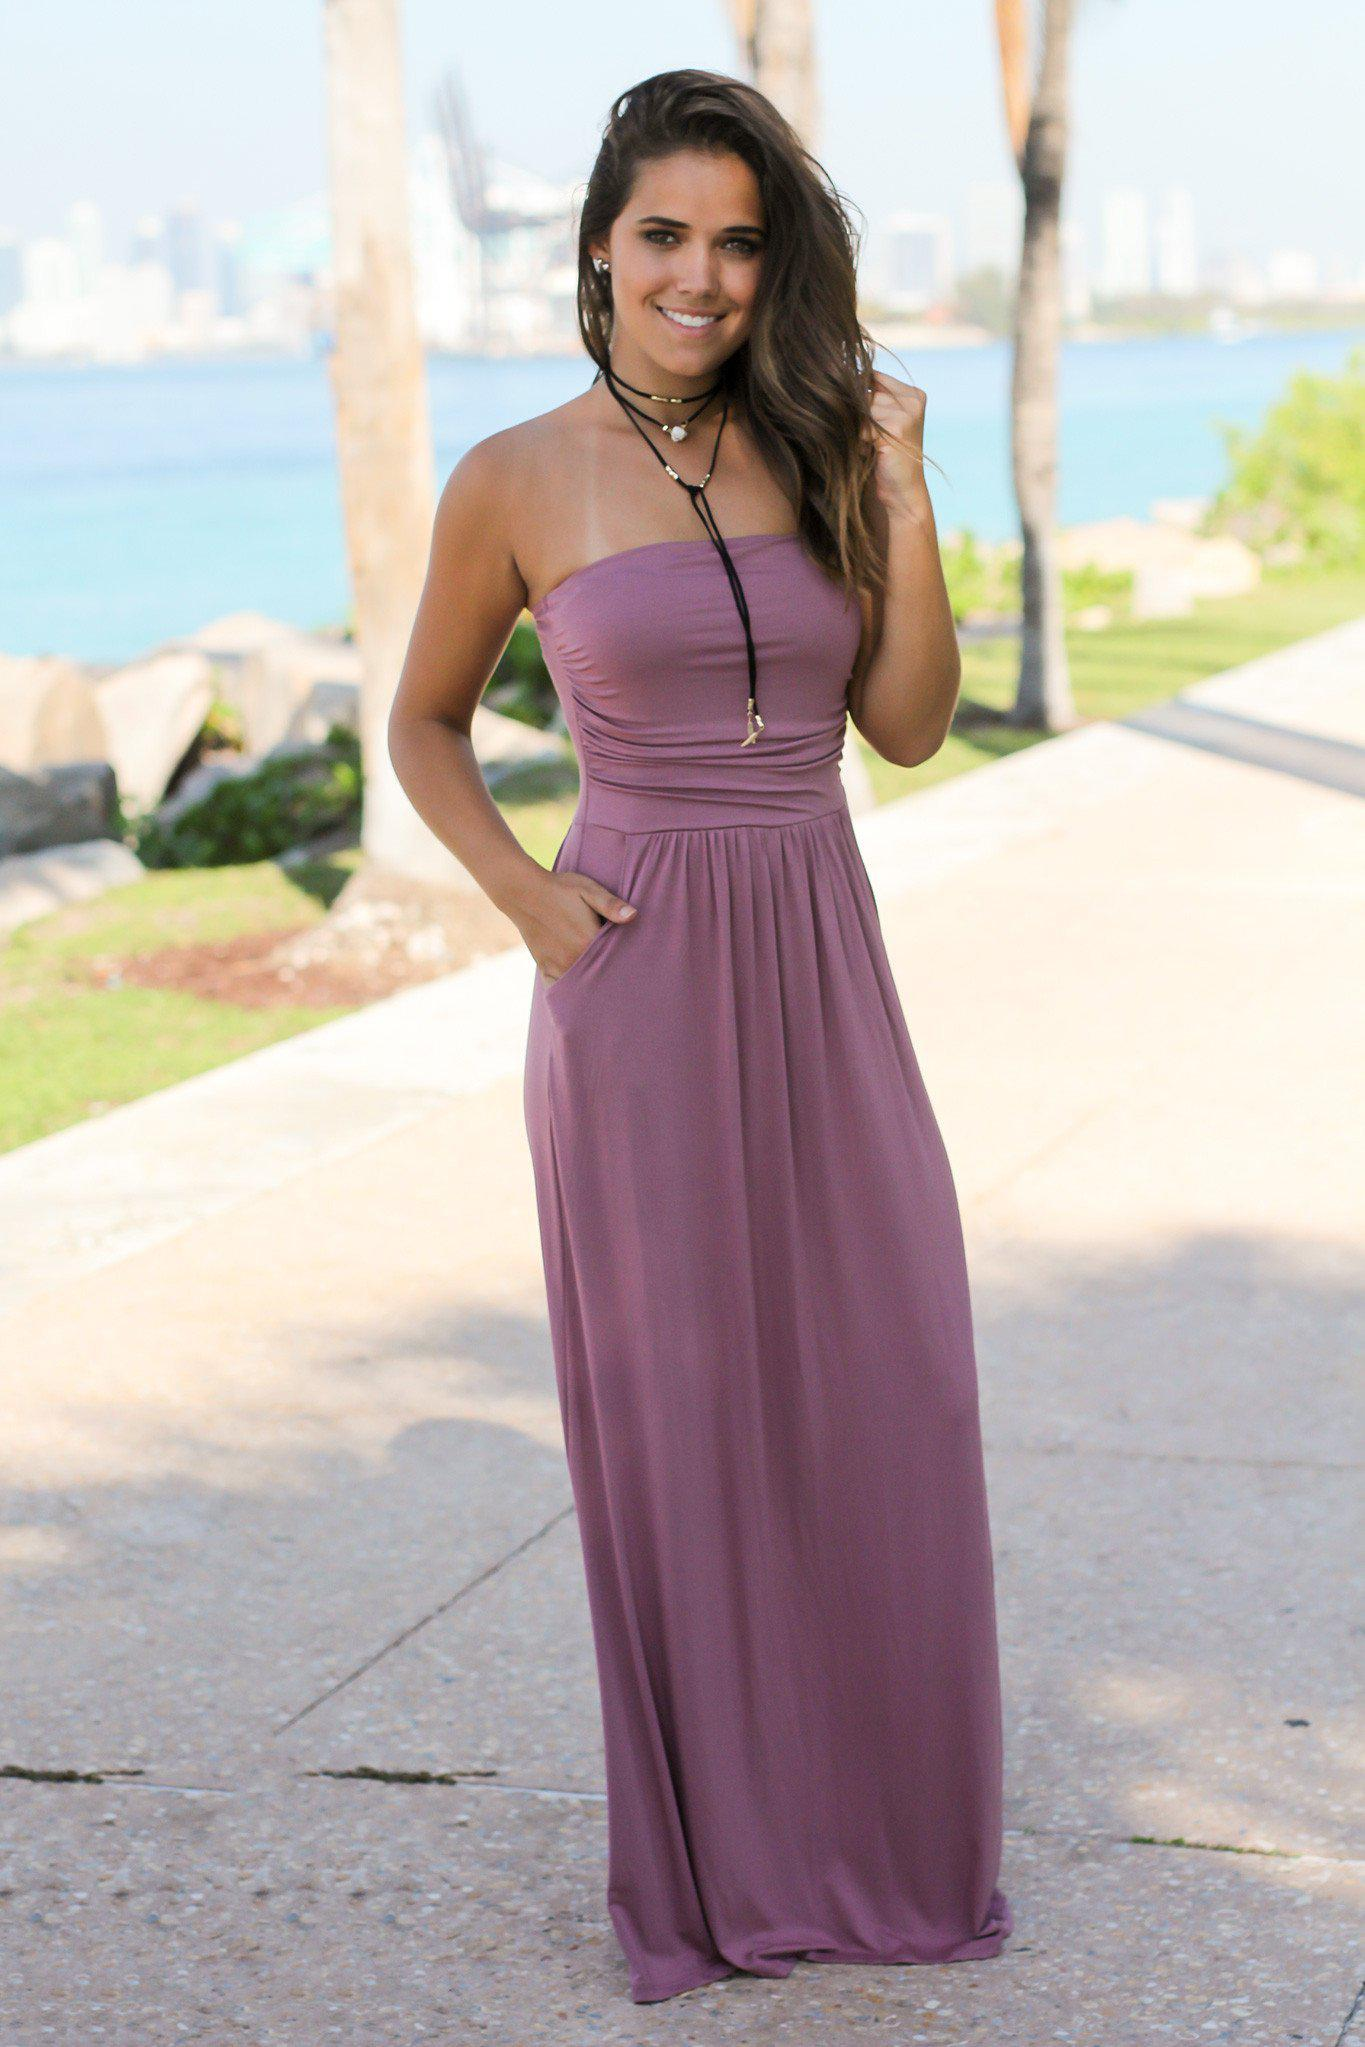 bcc145f5c3e1 Strapless Mauve Maxi Dress with Pockets | Maxi Dresses – Saved by the Dress